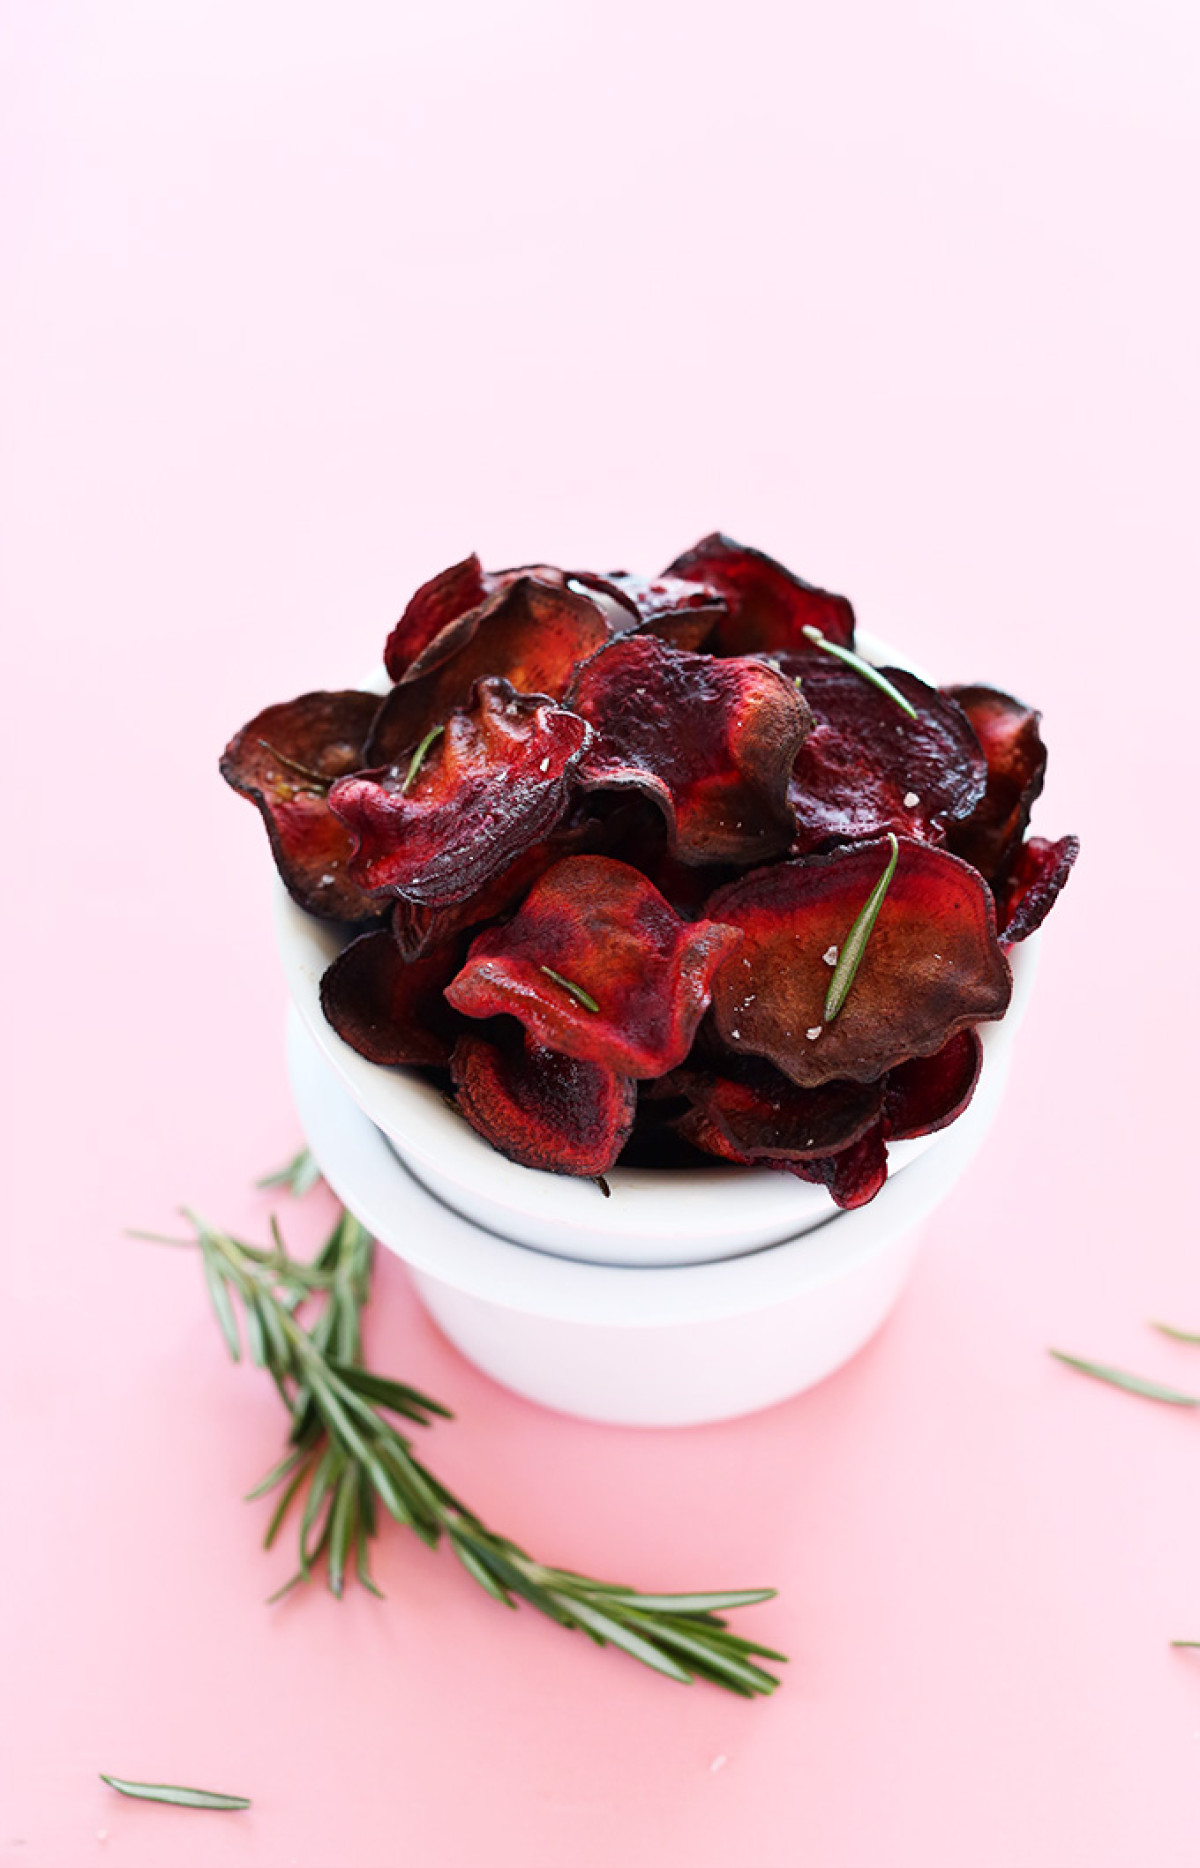 baked rosemary beet chips, i'm going to make these this weekend